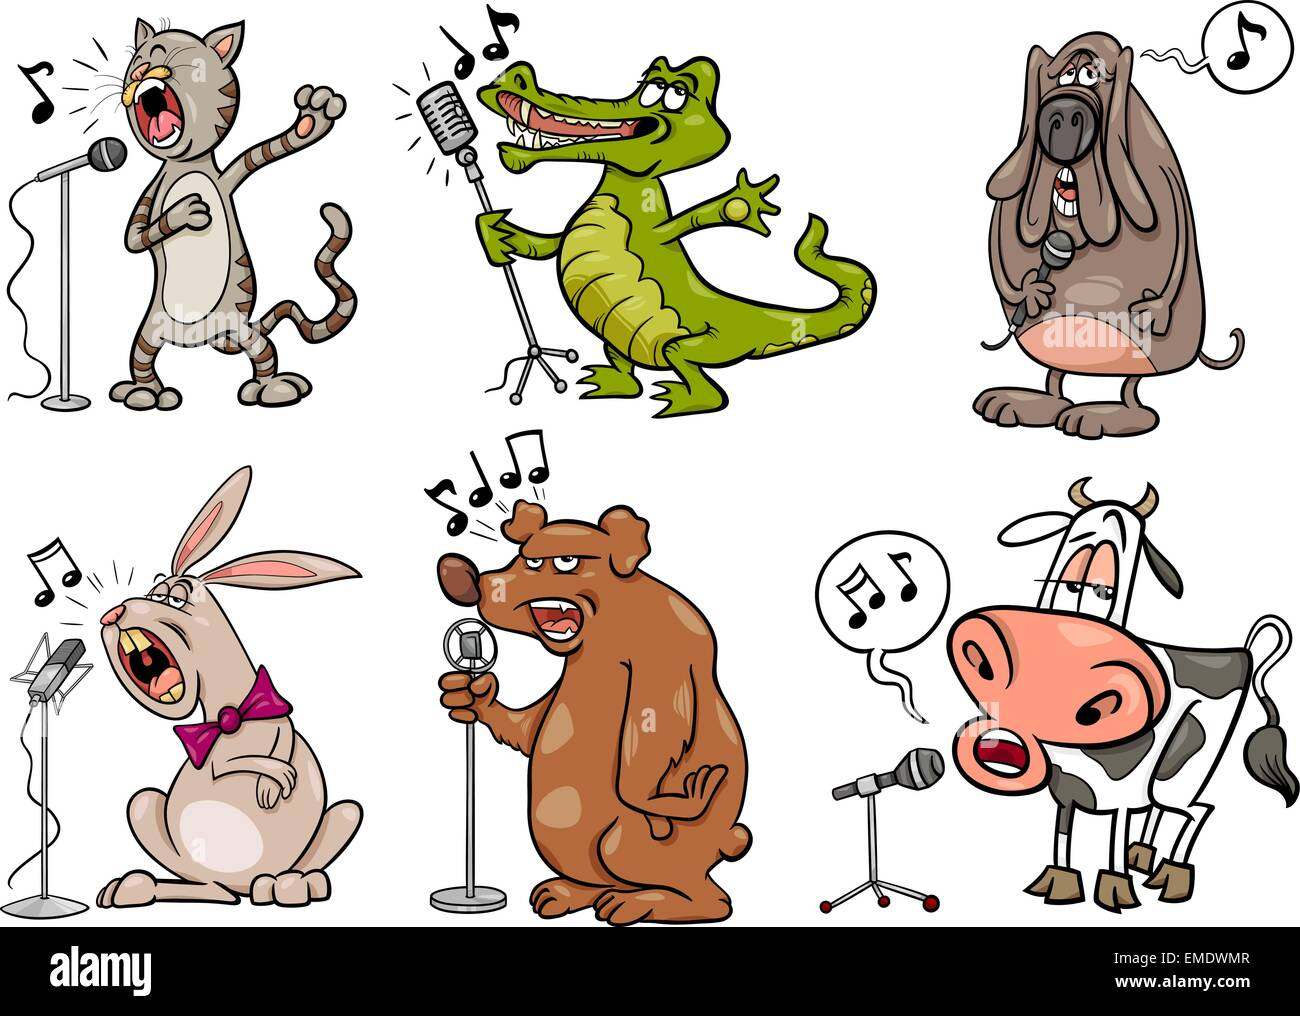 Singing Animals Set Cartoon Illustration Stock Vector Image Art Alamy